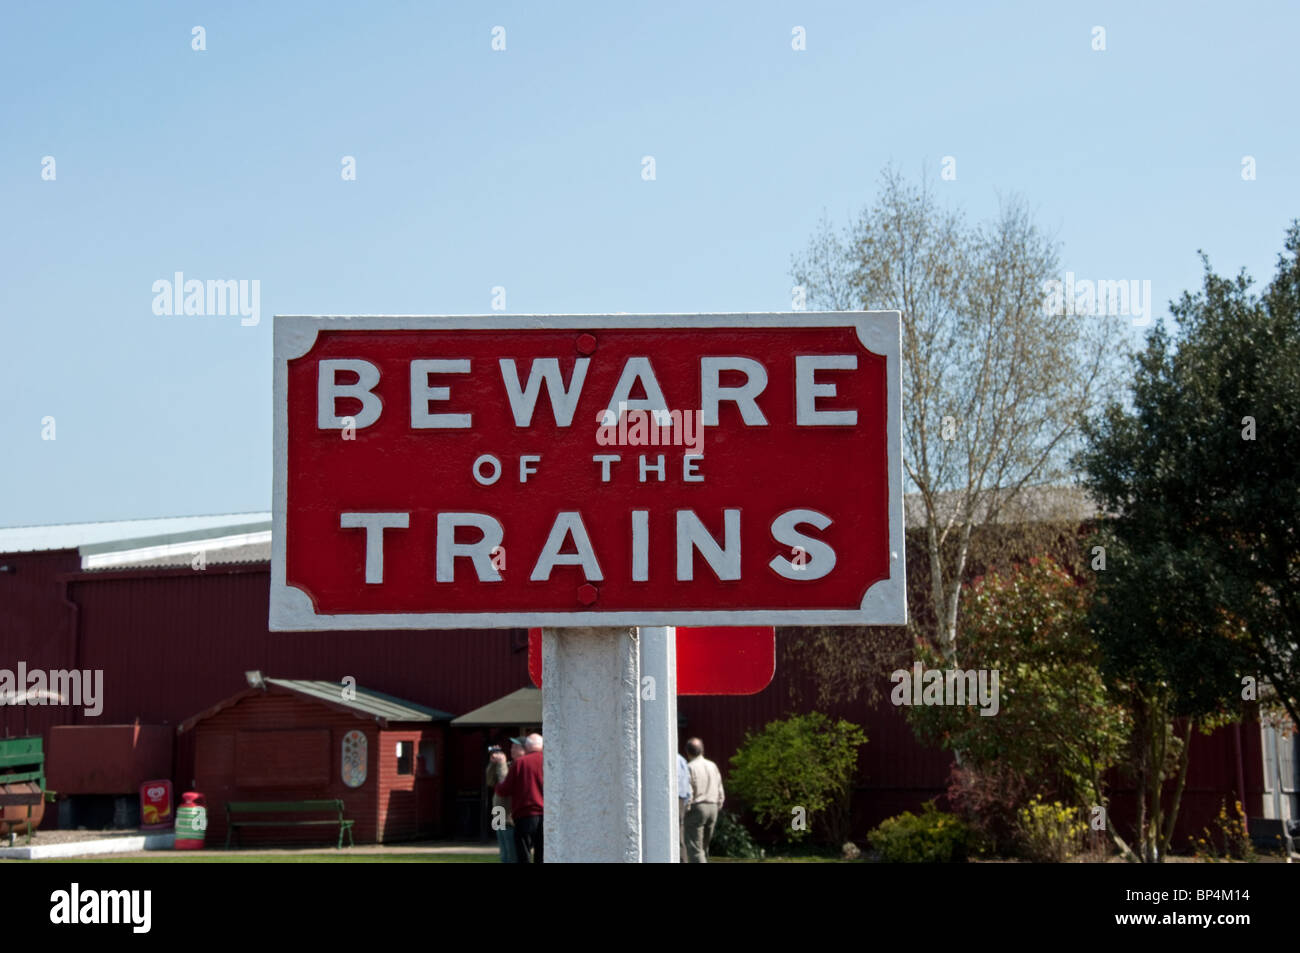 Beware of the trains sign - Stock Image